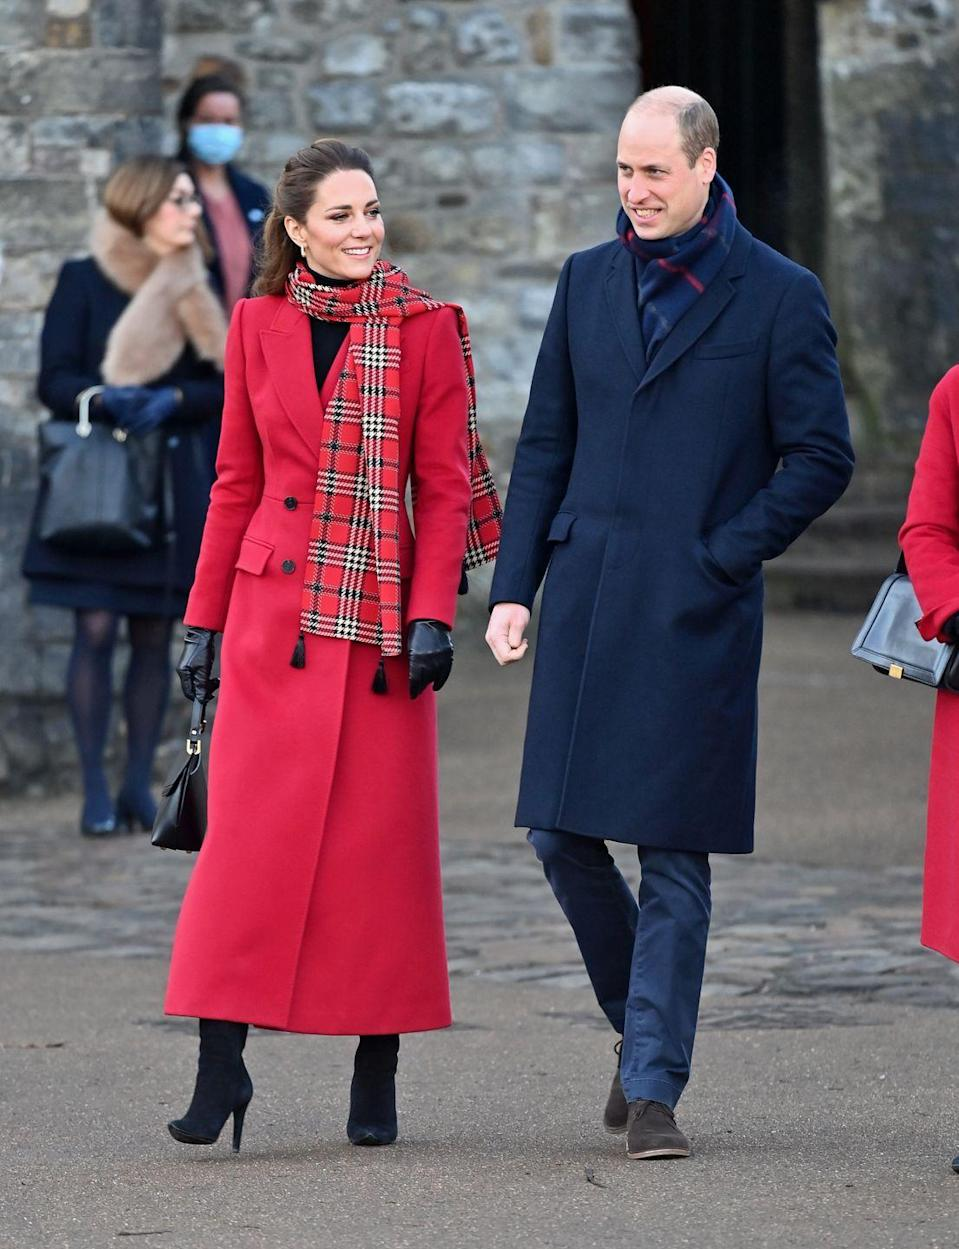 <p>While on their royal train tour to thank transport workers in London, the duchess wore a festive red wool coat with a plaid scarf and black suede boots.</p>